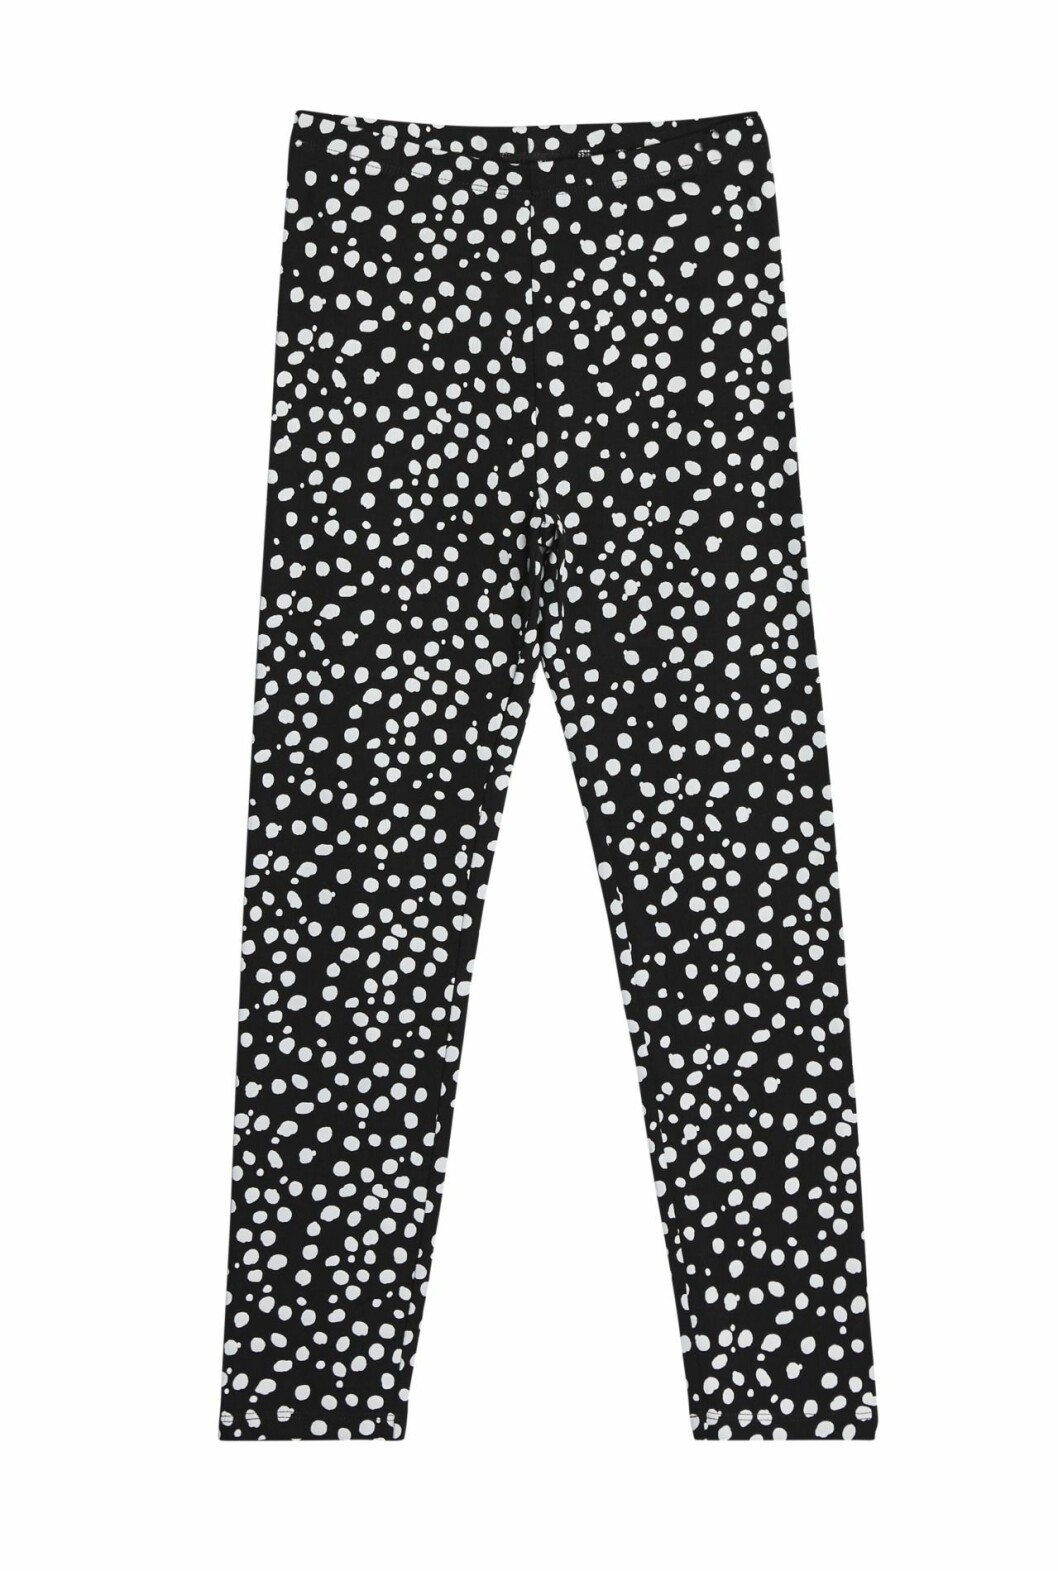 Gina tricot mini barnkollektion leggings